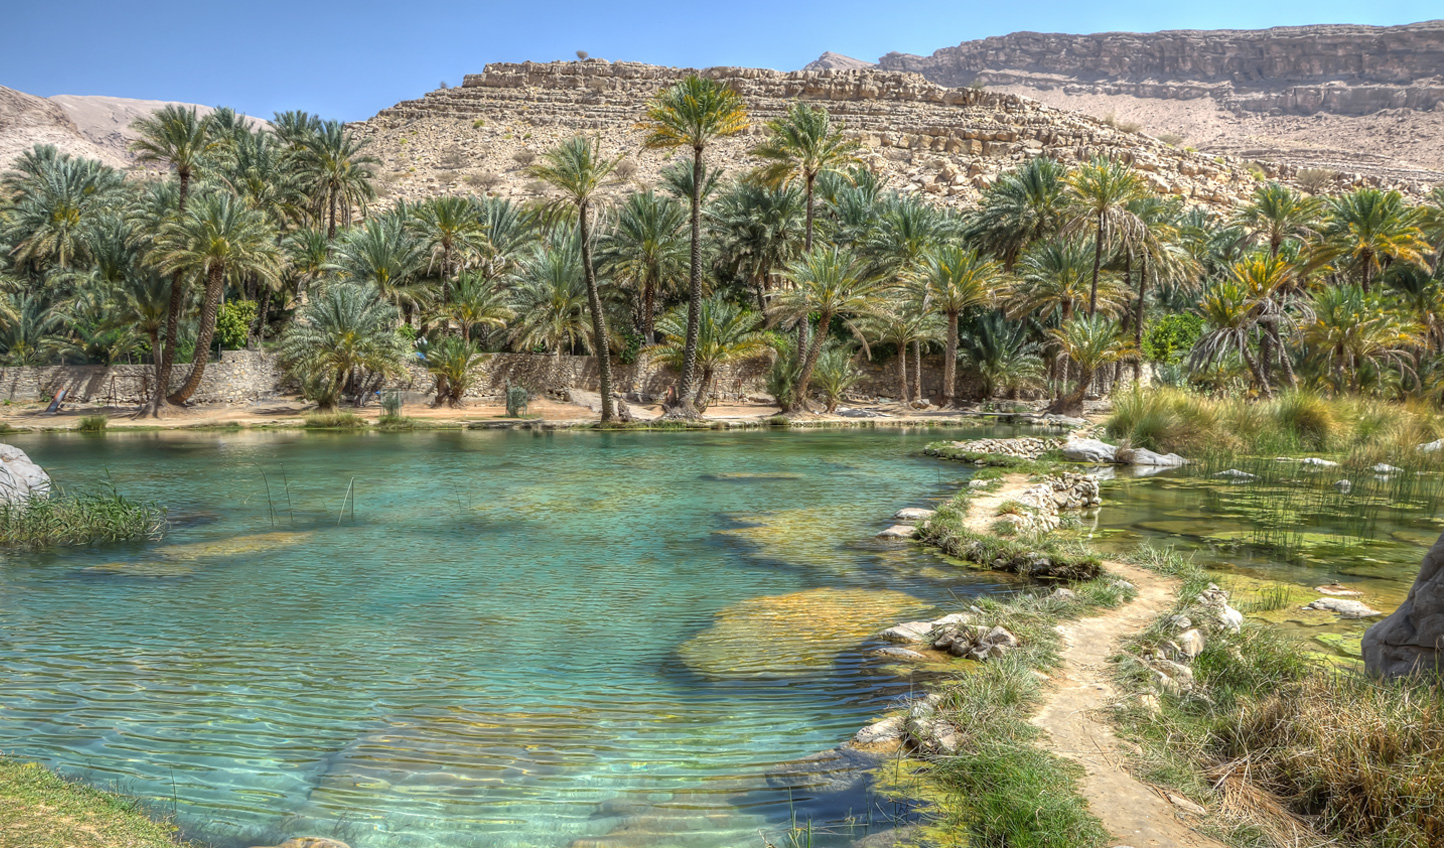 The emerald waters of Wadi Bani Khalid will invite you in for a mid-morning dip